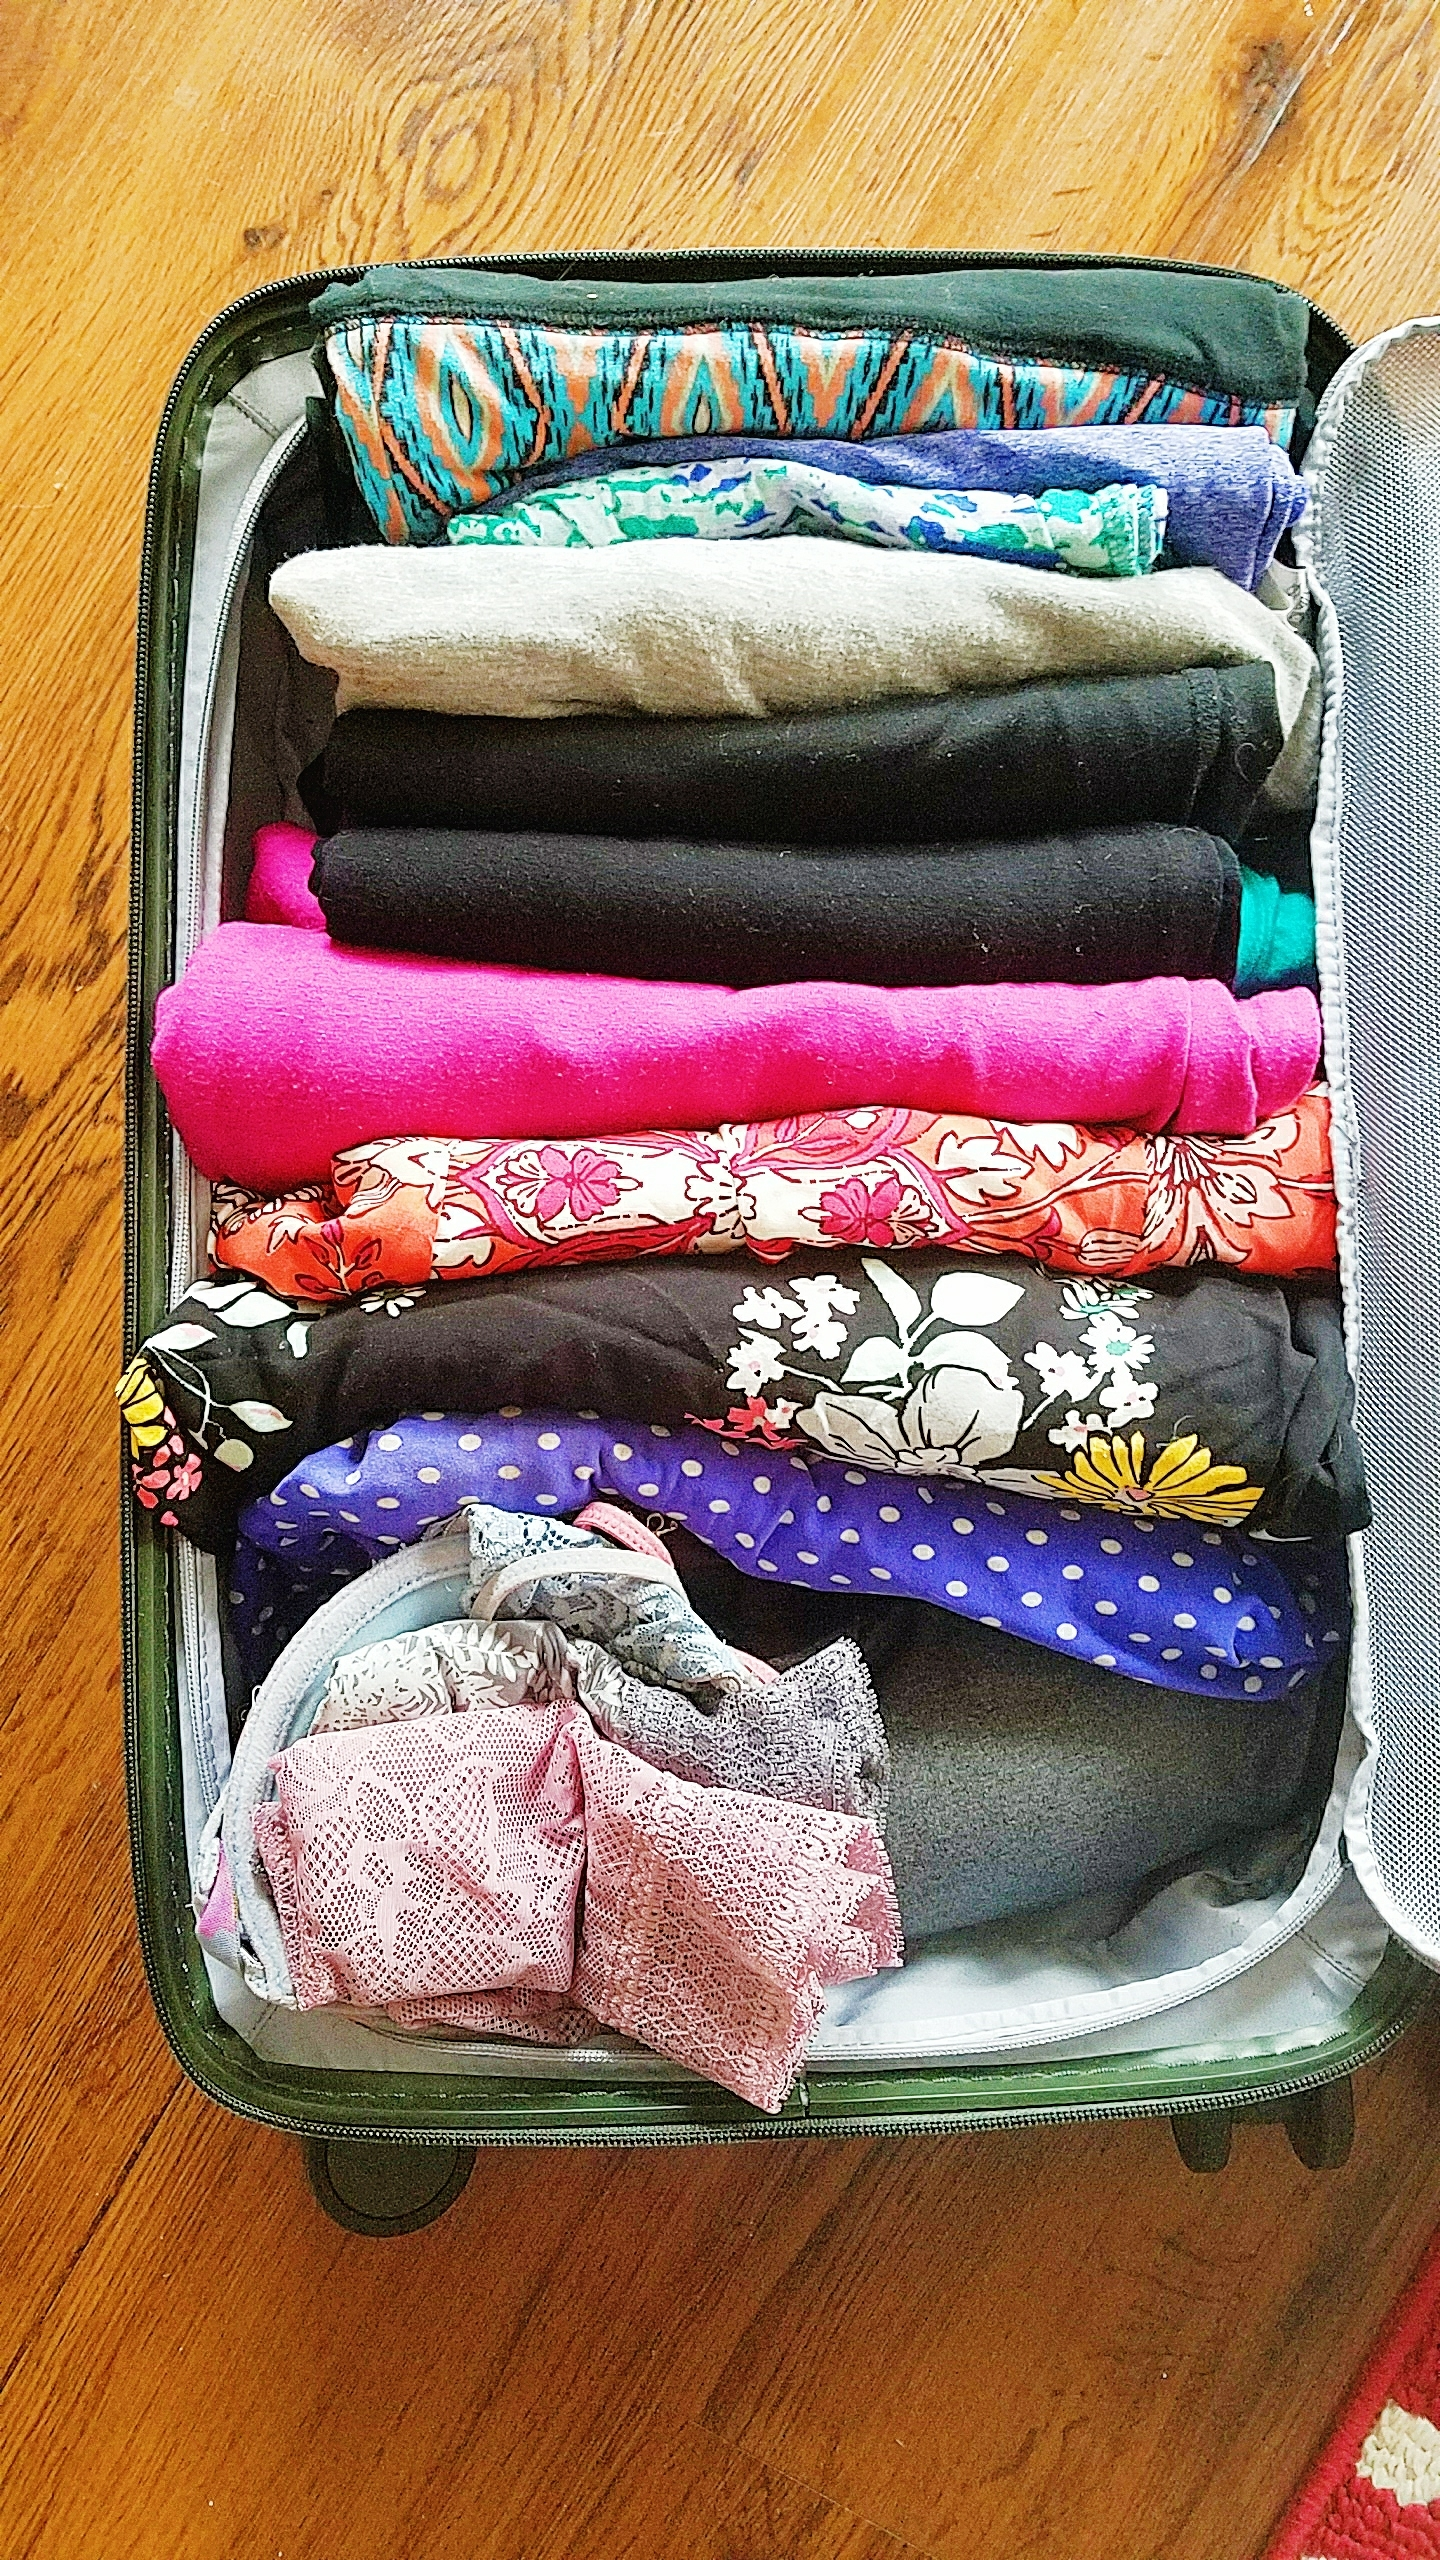 A weeks worth of clothes in one small case!